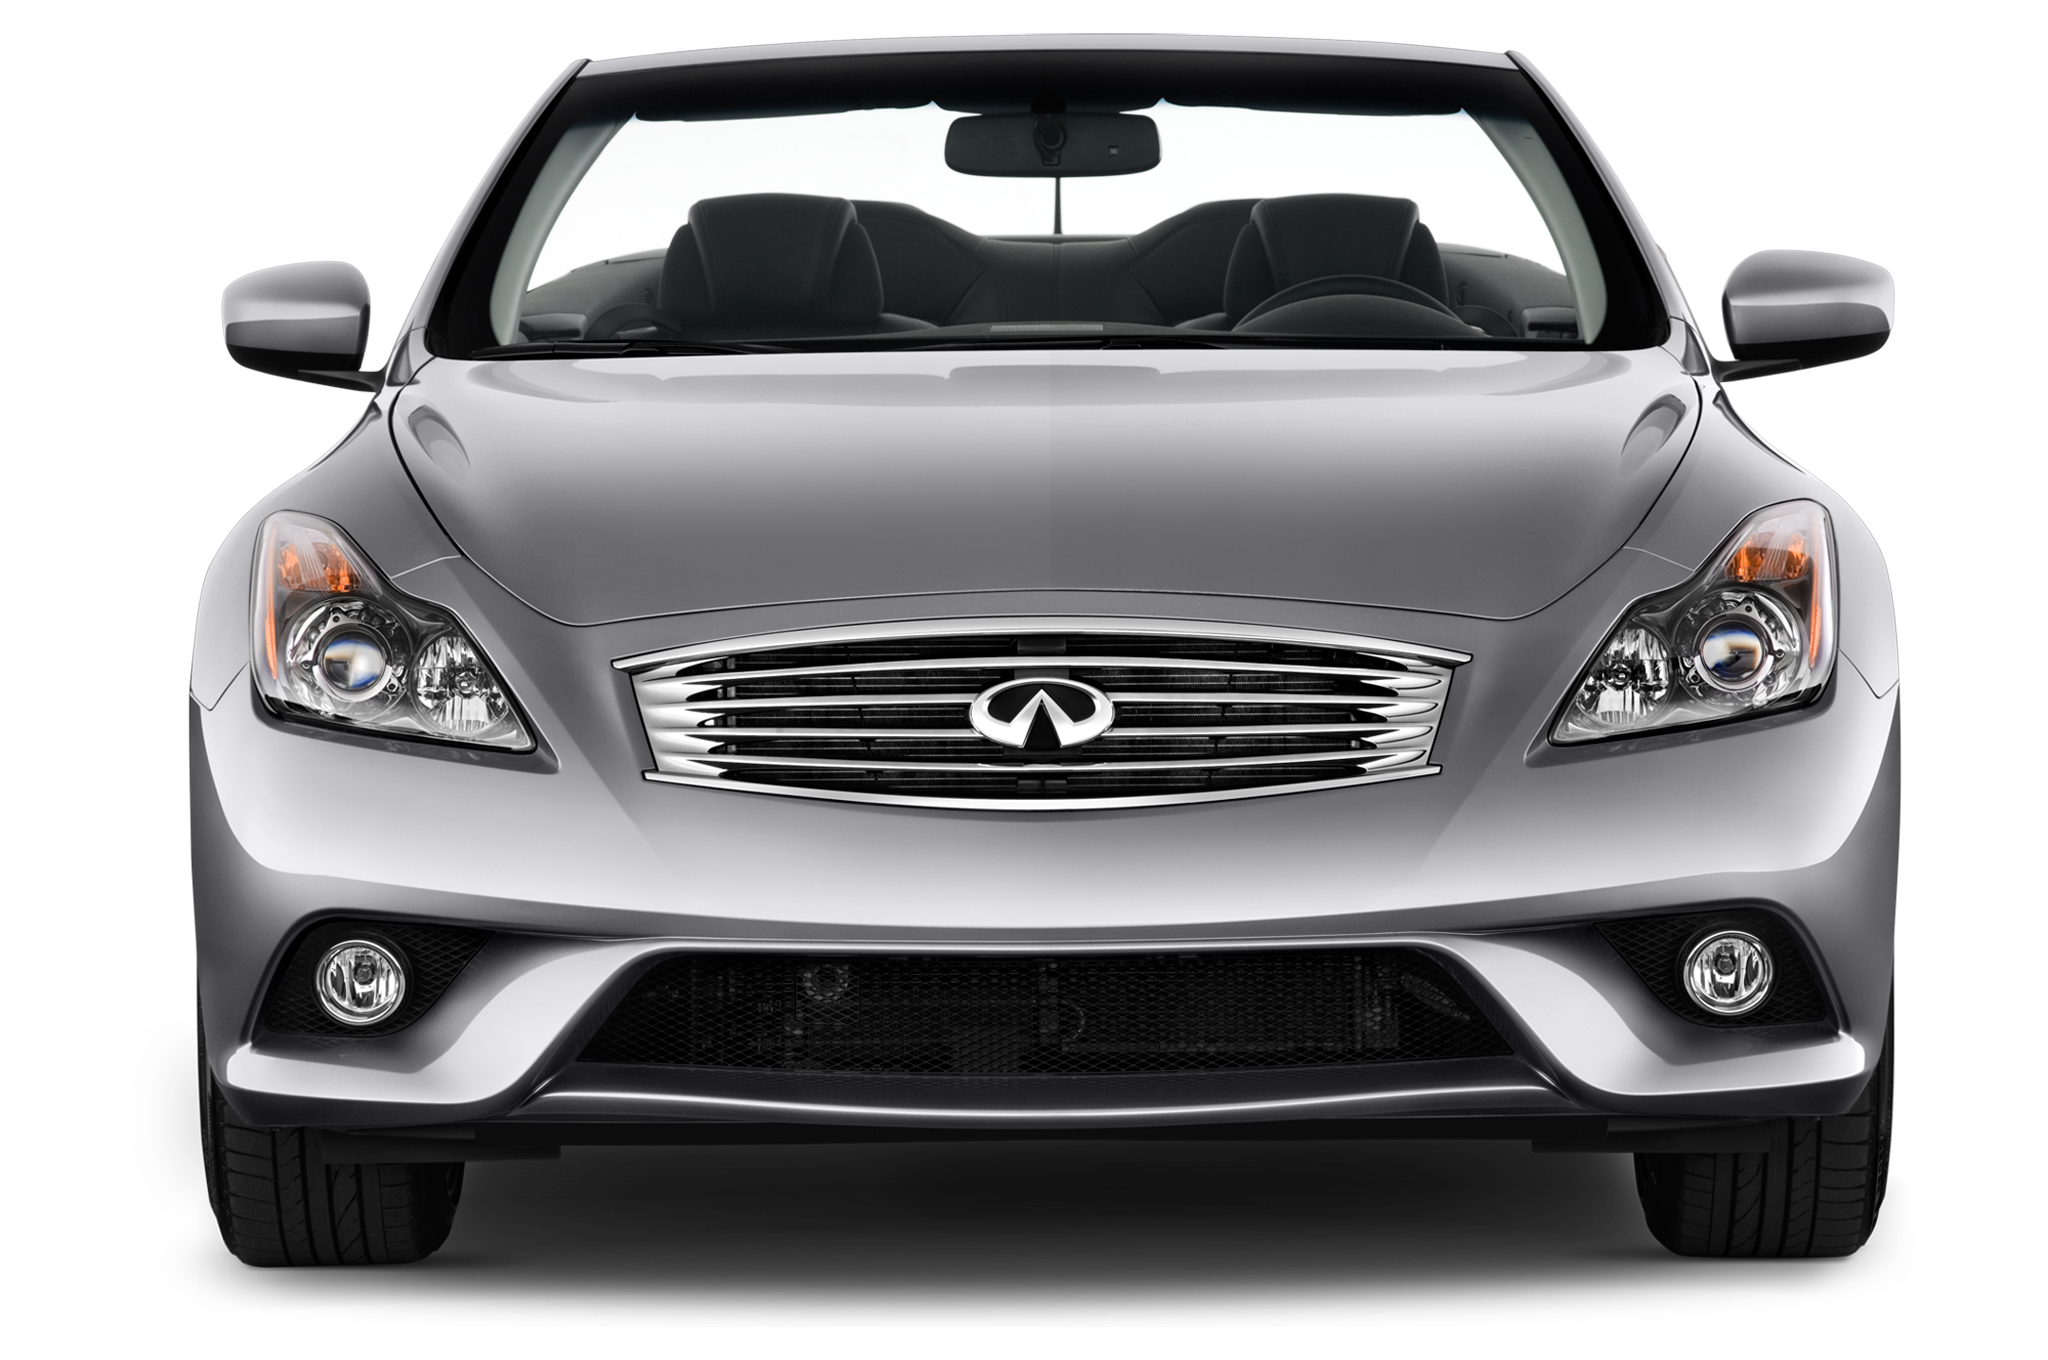 hardtop watch infiniti convertible review drive car hall roadflytv ipl infinity emme test with by